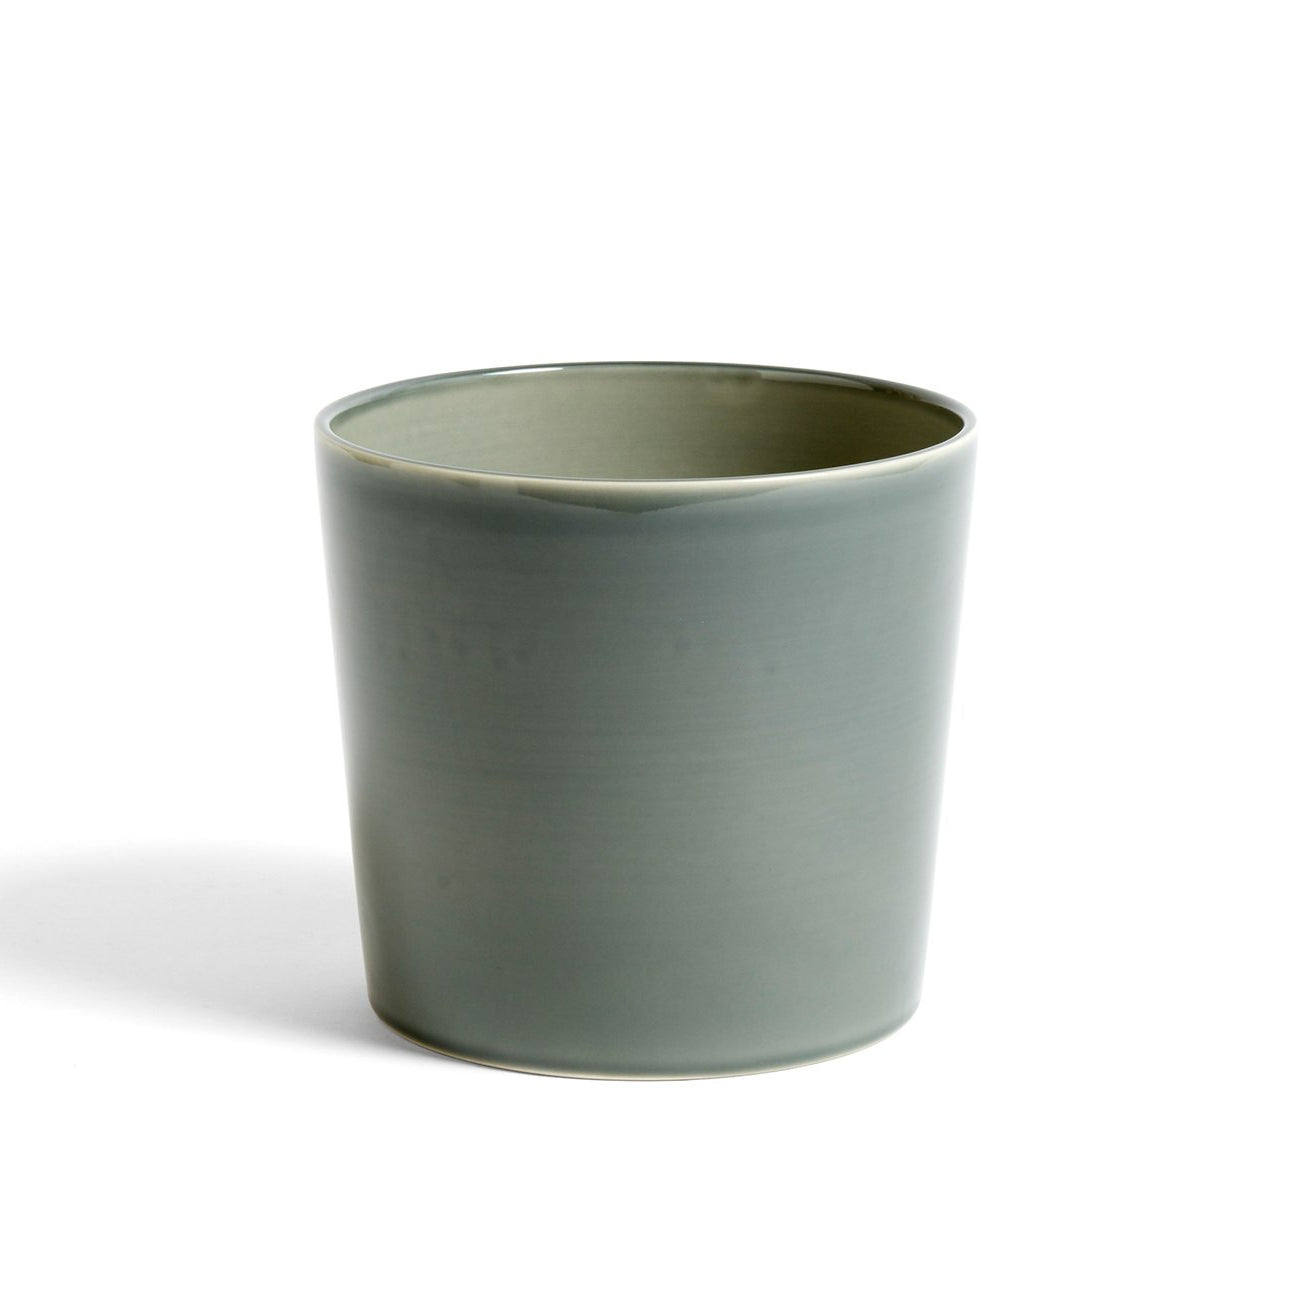 HAY Botanical Family Pot L: Dusty Green - The Union Project